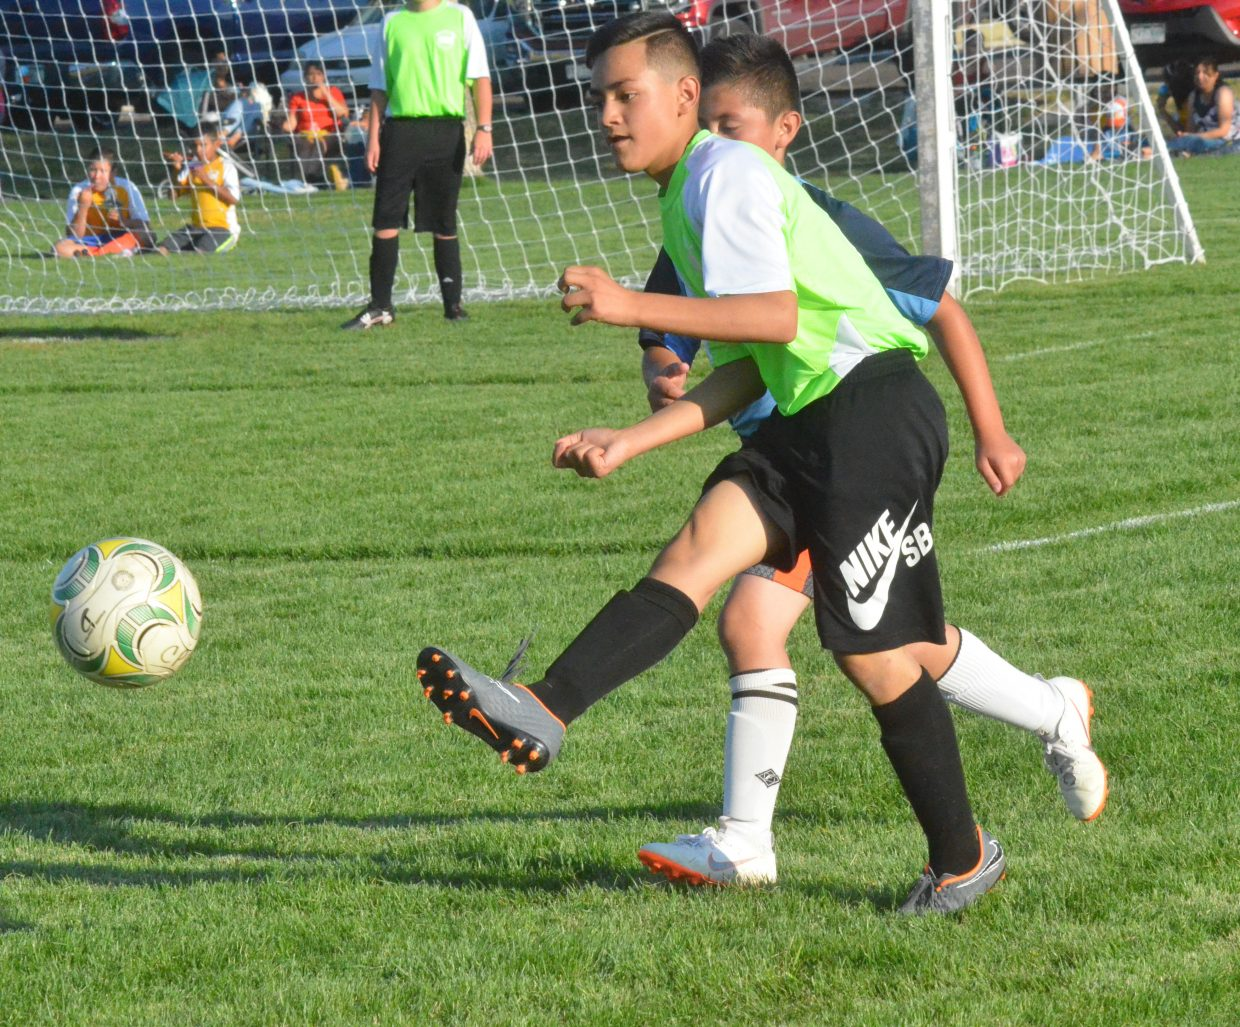 Edgar Hernandez, of the Voltage, kicks a lengthy pass downfield during a Craig Parks and Recreation 12 and under soccer game.